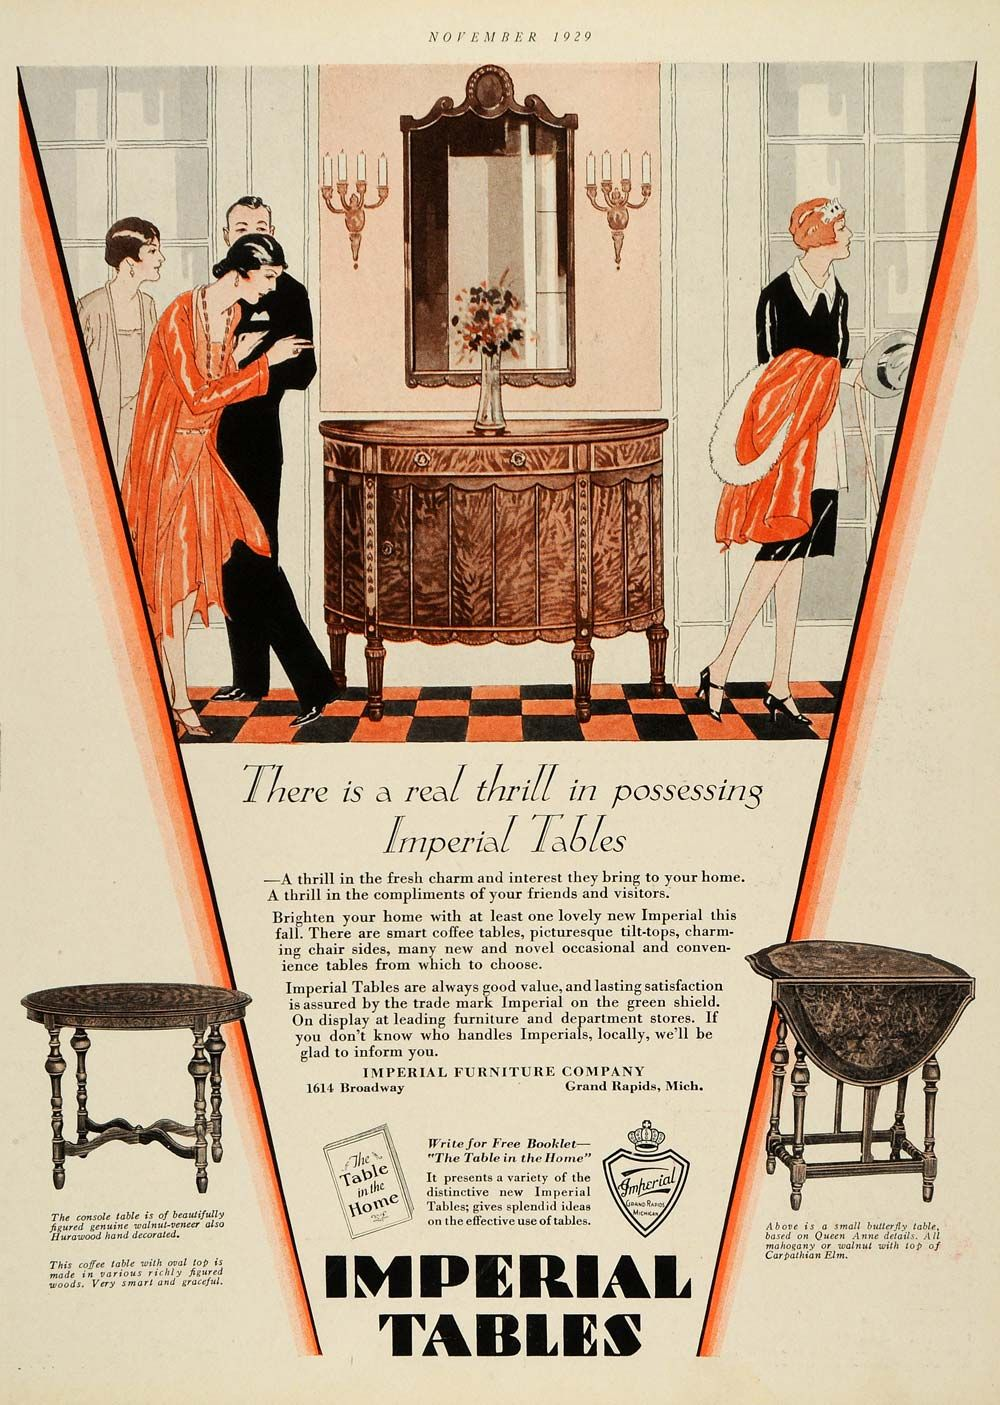 Imperial furniture -  There S A Real Thrill In Posessing Imperial Tables 1929 Imperial Furniture Vintage Advertisement